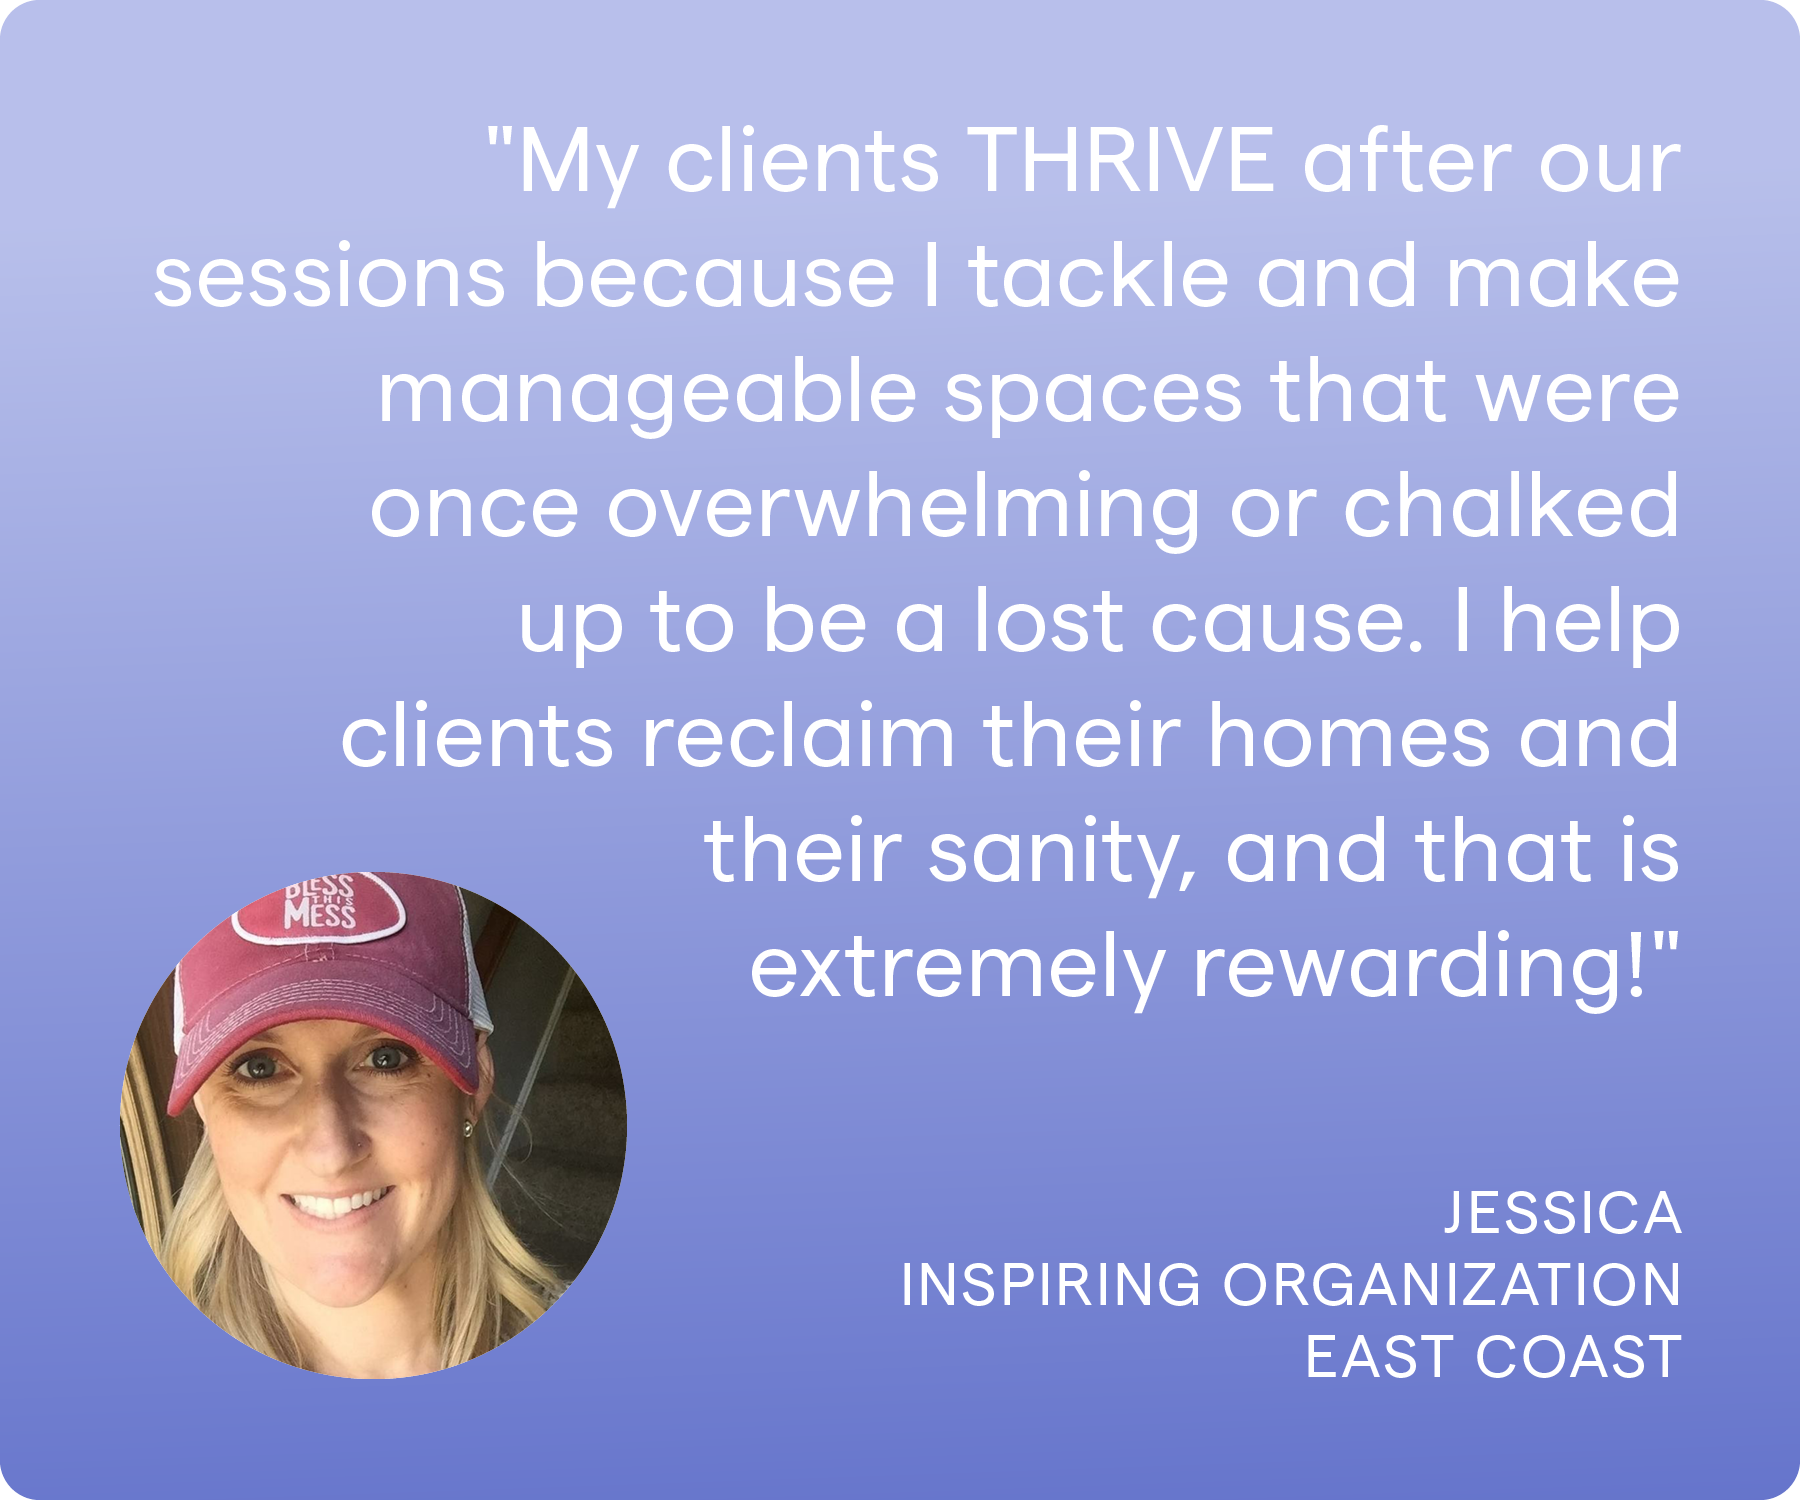 'My clients THRIVE after our sessions because I tackle and make manageable spaces that were once overwhelming or chalked up to be a lost cause. I help clients reclaim their homes and their sanity, and that is extremely rewarding!' Jessica, Inspiring Organization, East Coast